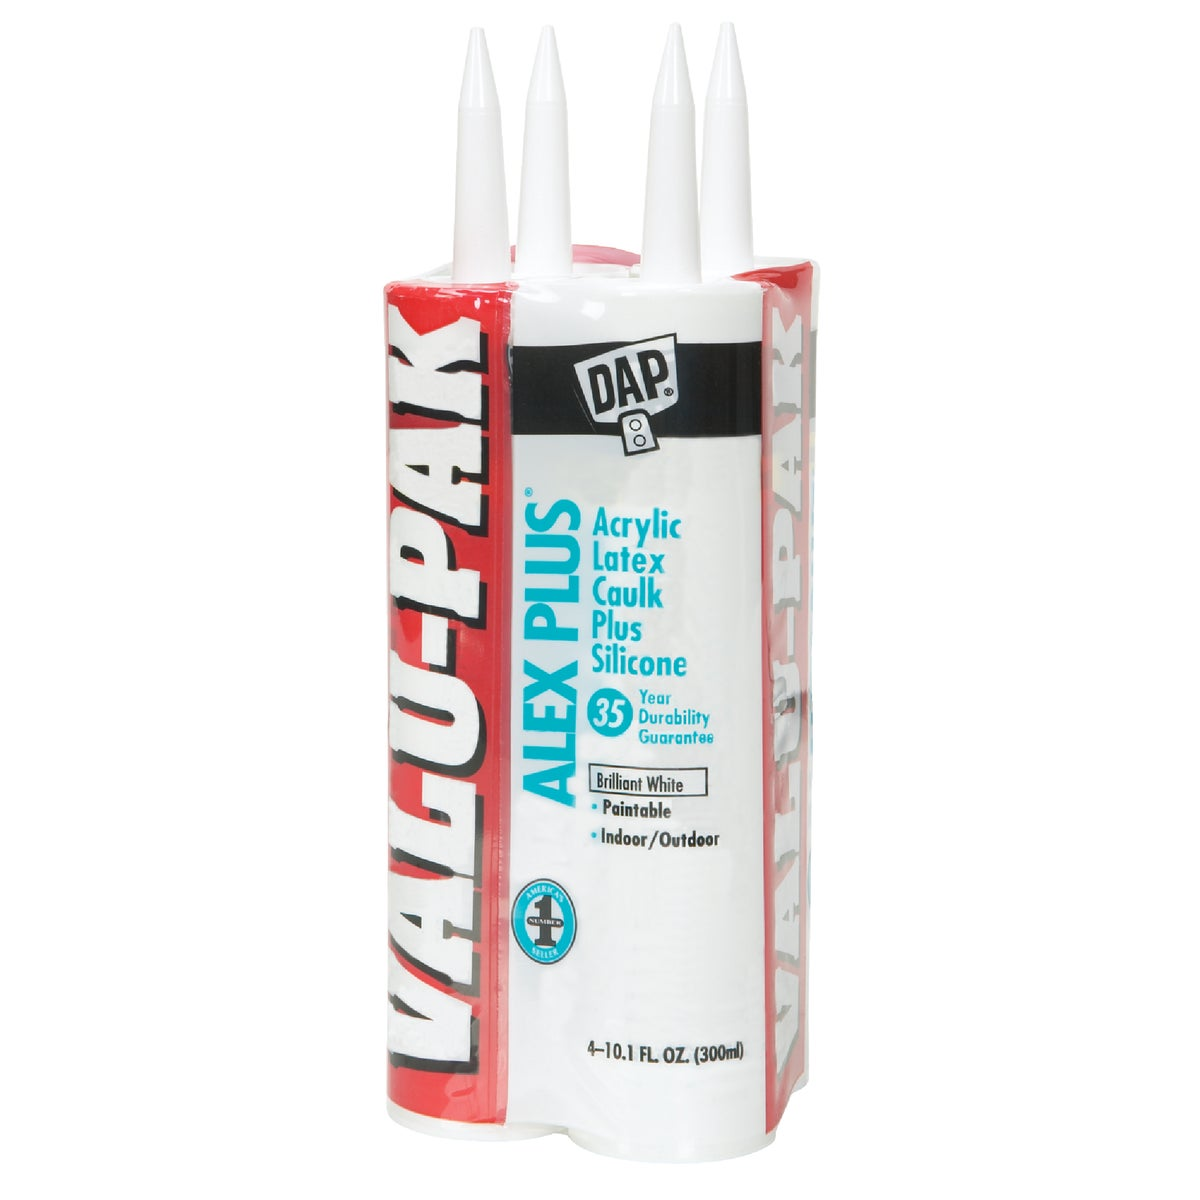 4PK WHT ALEX PLUS CAULK - 18136 by Dap Inc